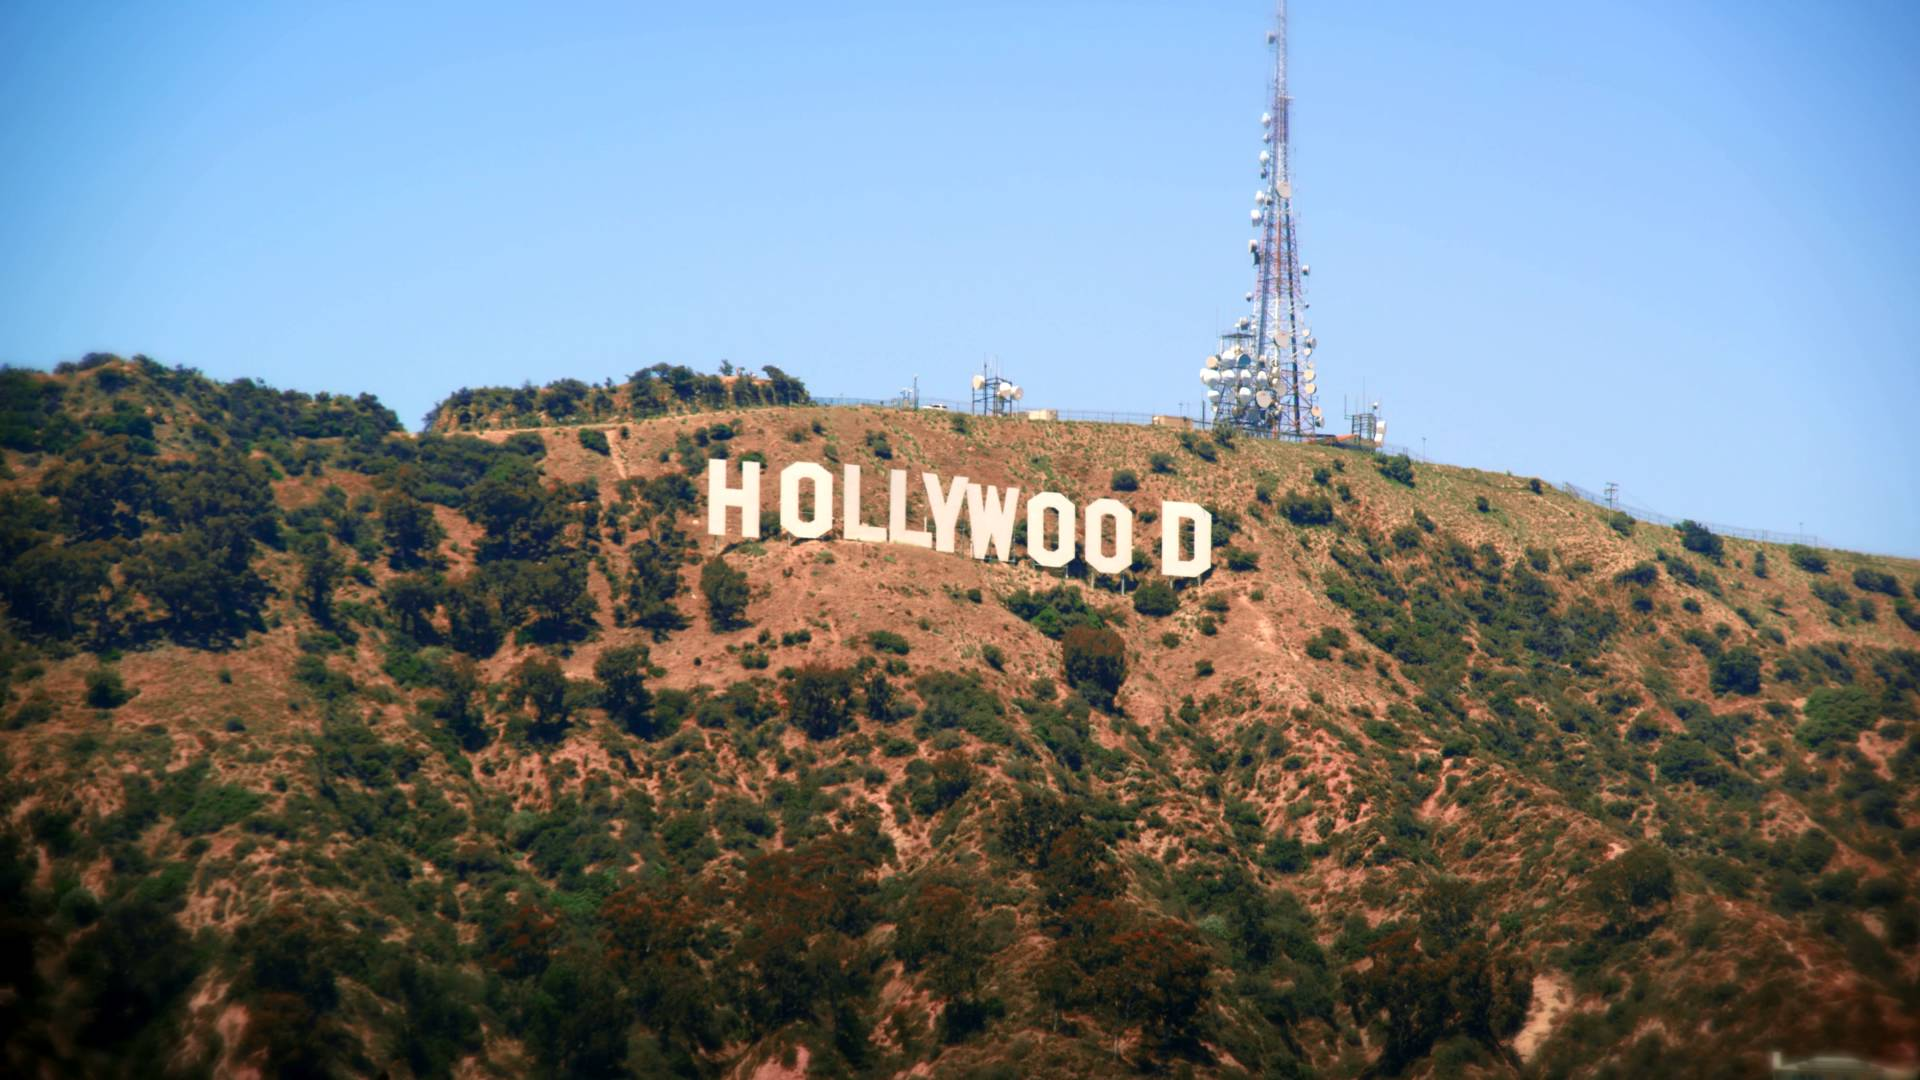 Displaying 13 Images For   Cool Hollywood Sign Wallpaper 1920x1080